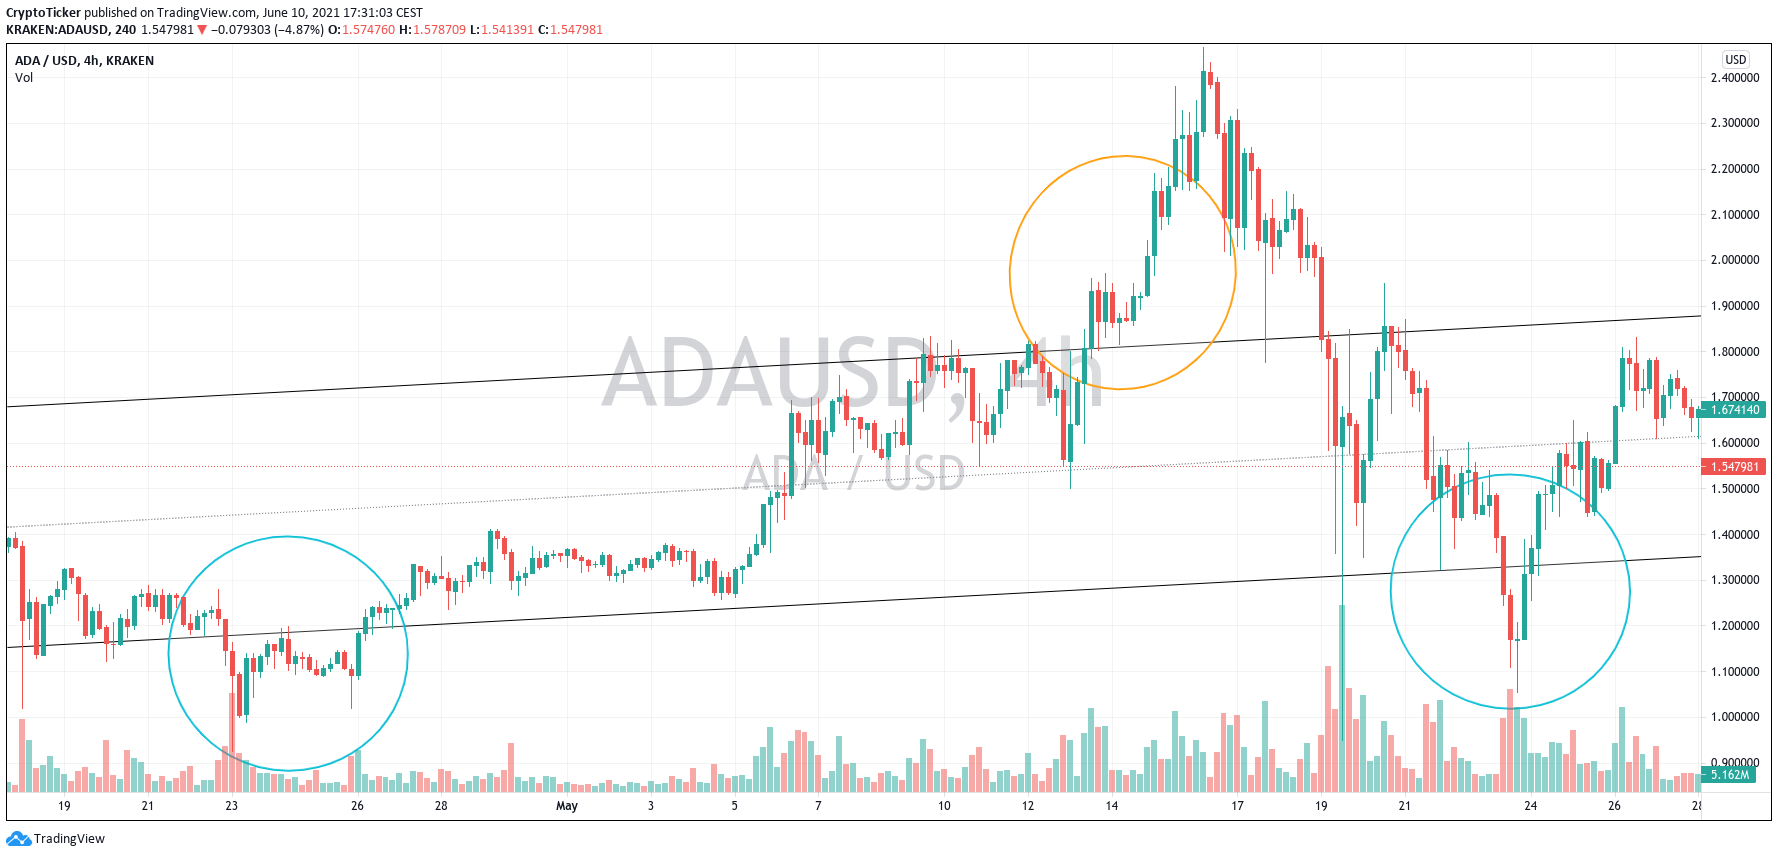 Cardano Price Prediction - ADA chart showing the rise and the fall of Cardano